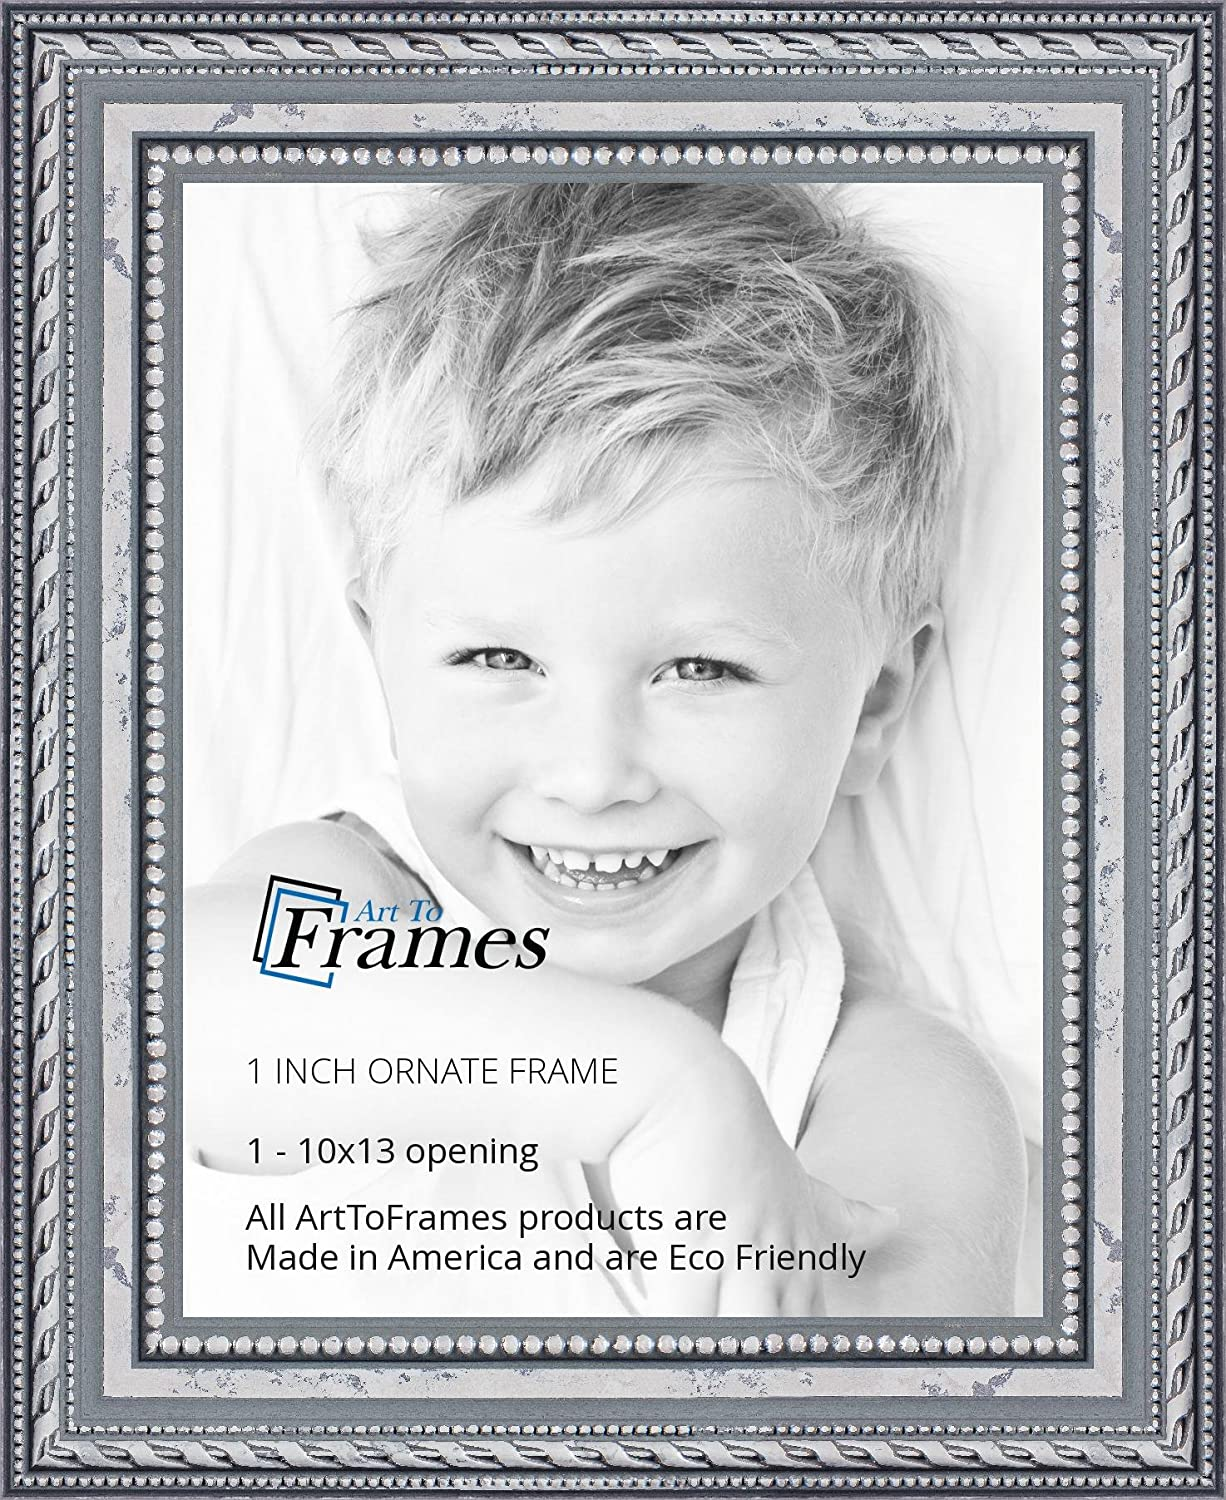 Amazon.com - ArtToFrames 10x13 inch Ornate SIlver Wood Picture Frame ...